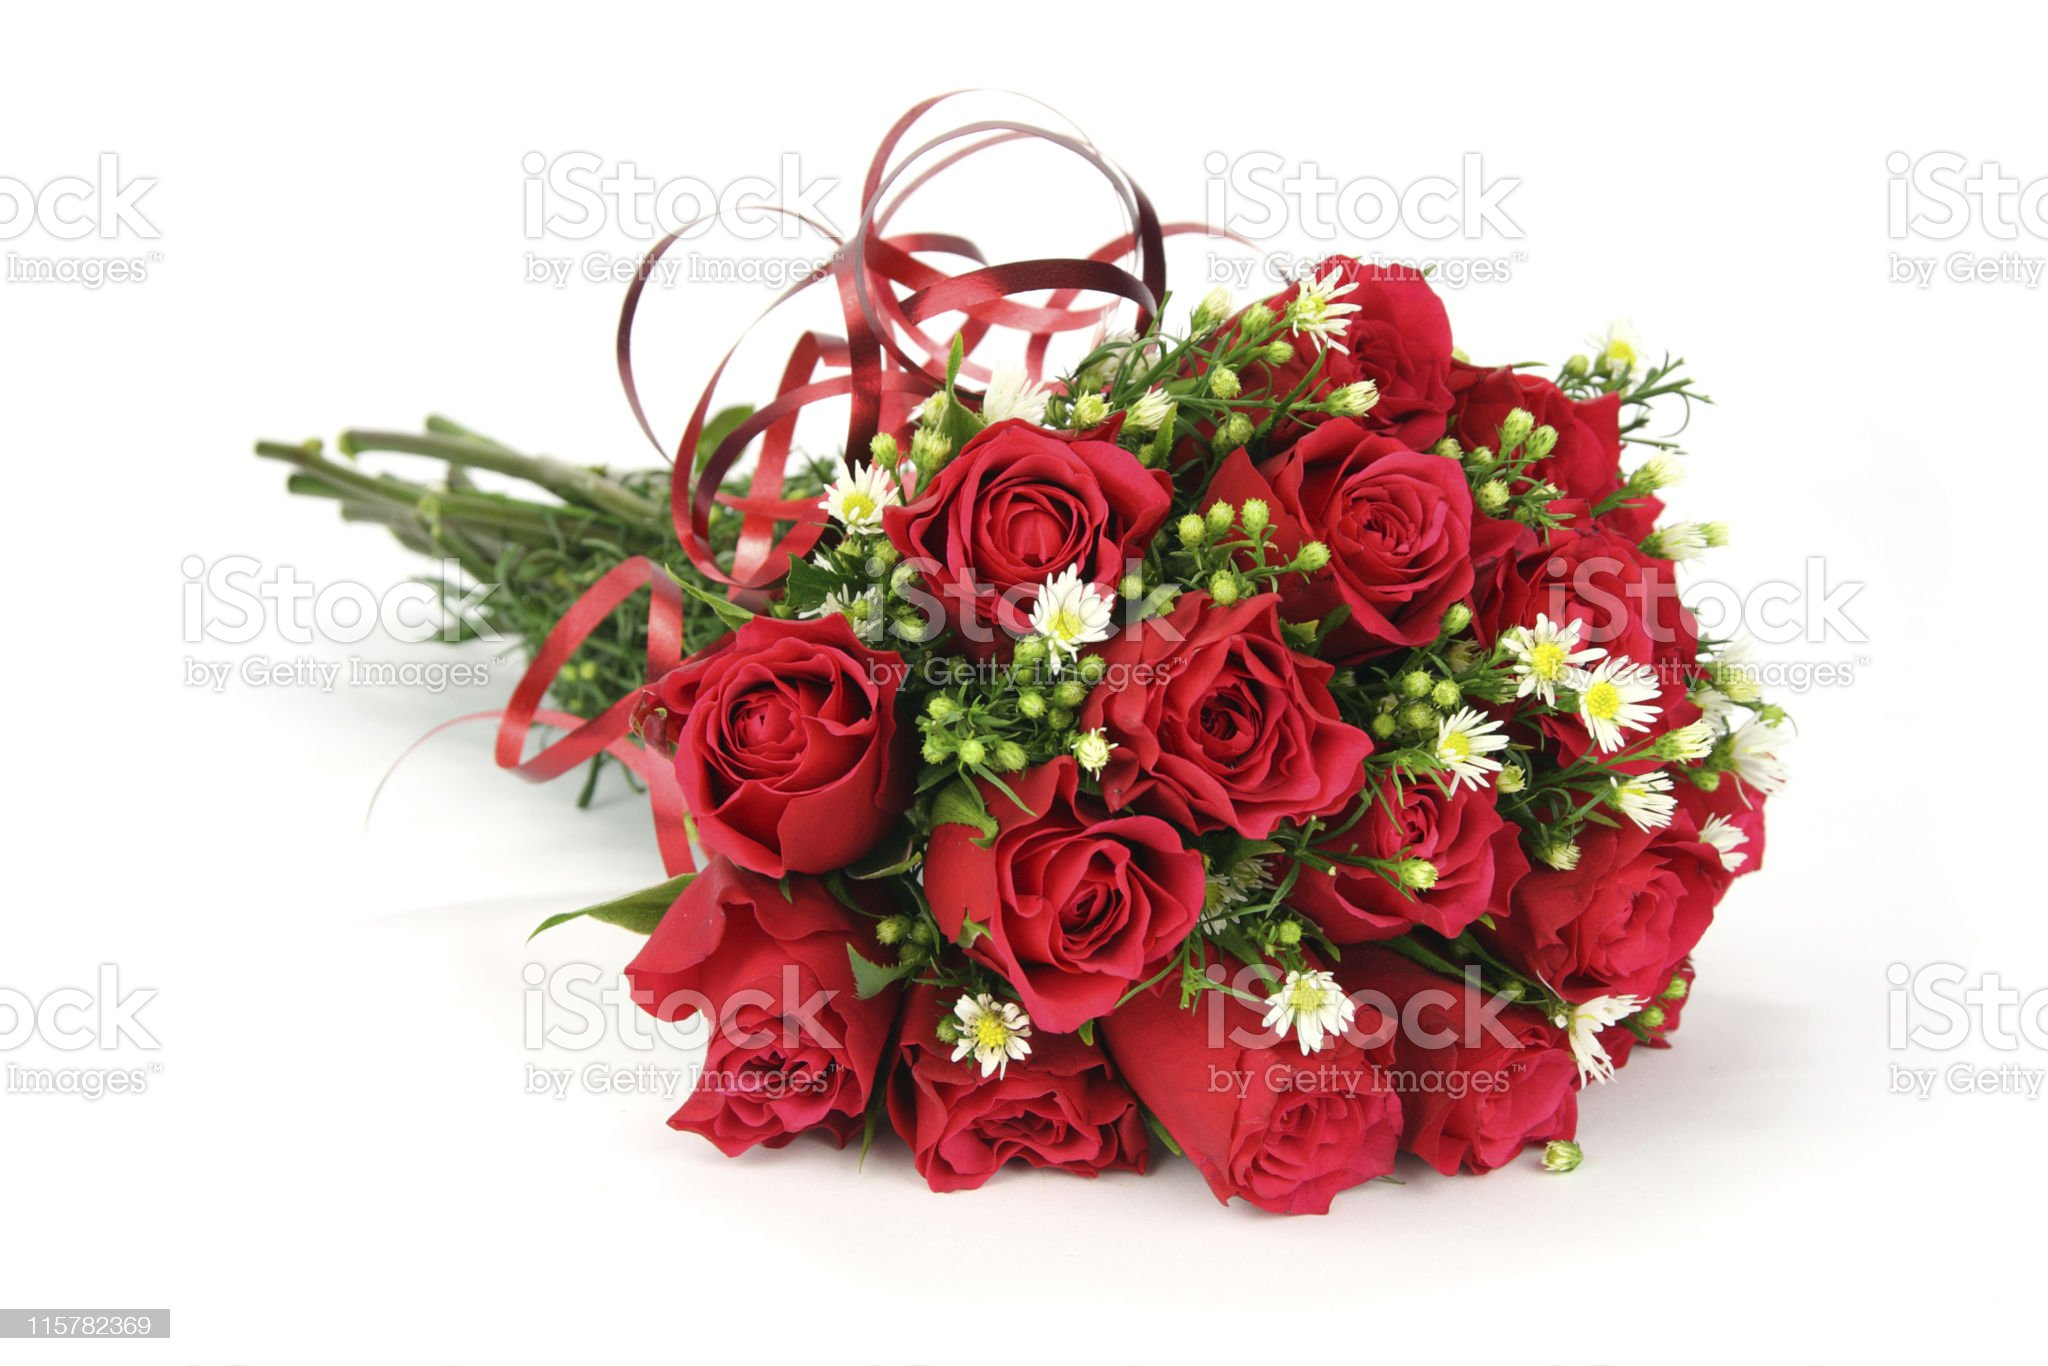 Red and white valentines or wedding rose bouquet royalty-free stock photo